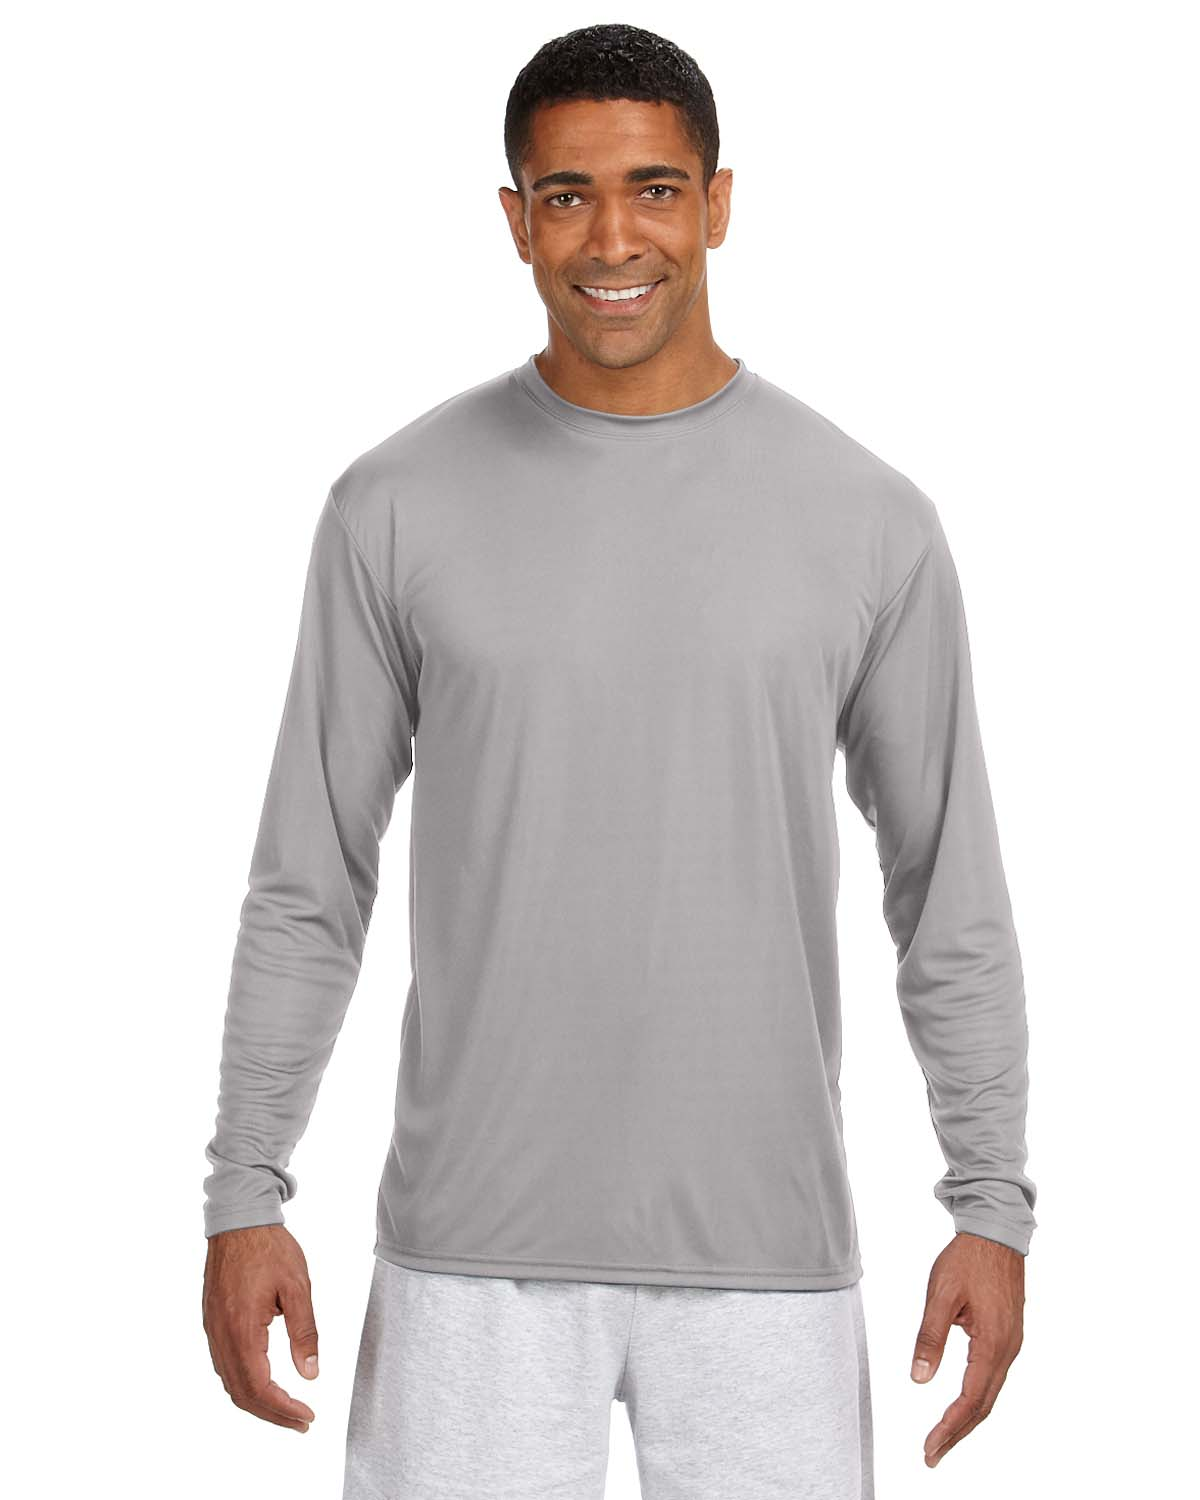 A4 Long-Sleeve Cooling Performance Crew Neck T-Shirt